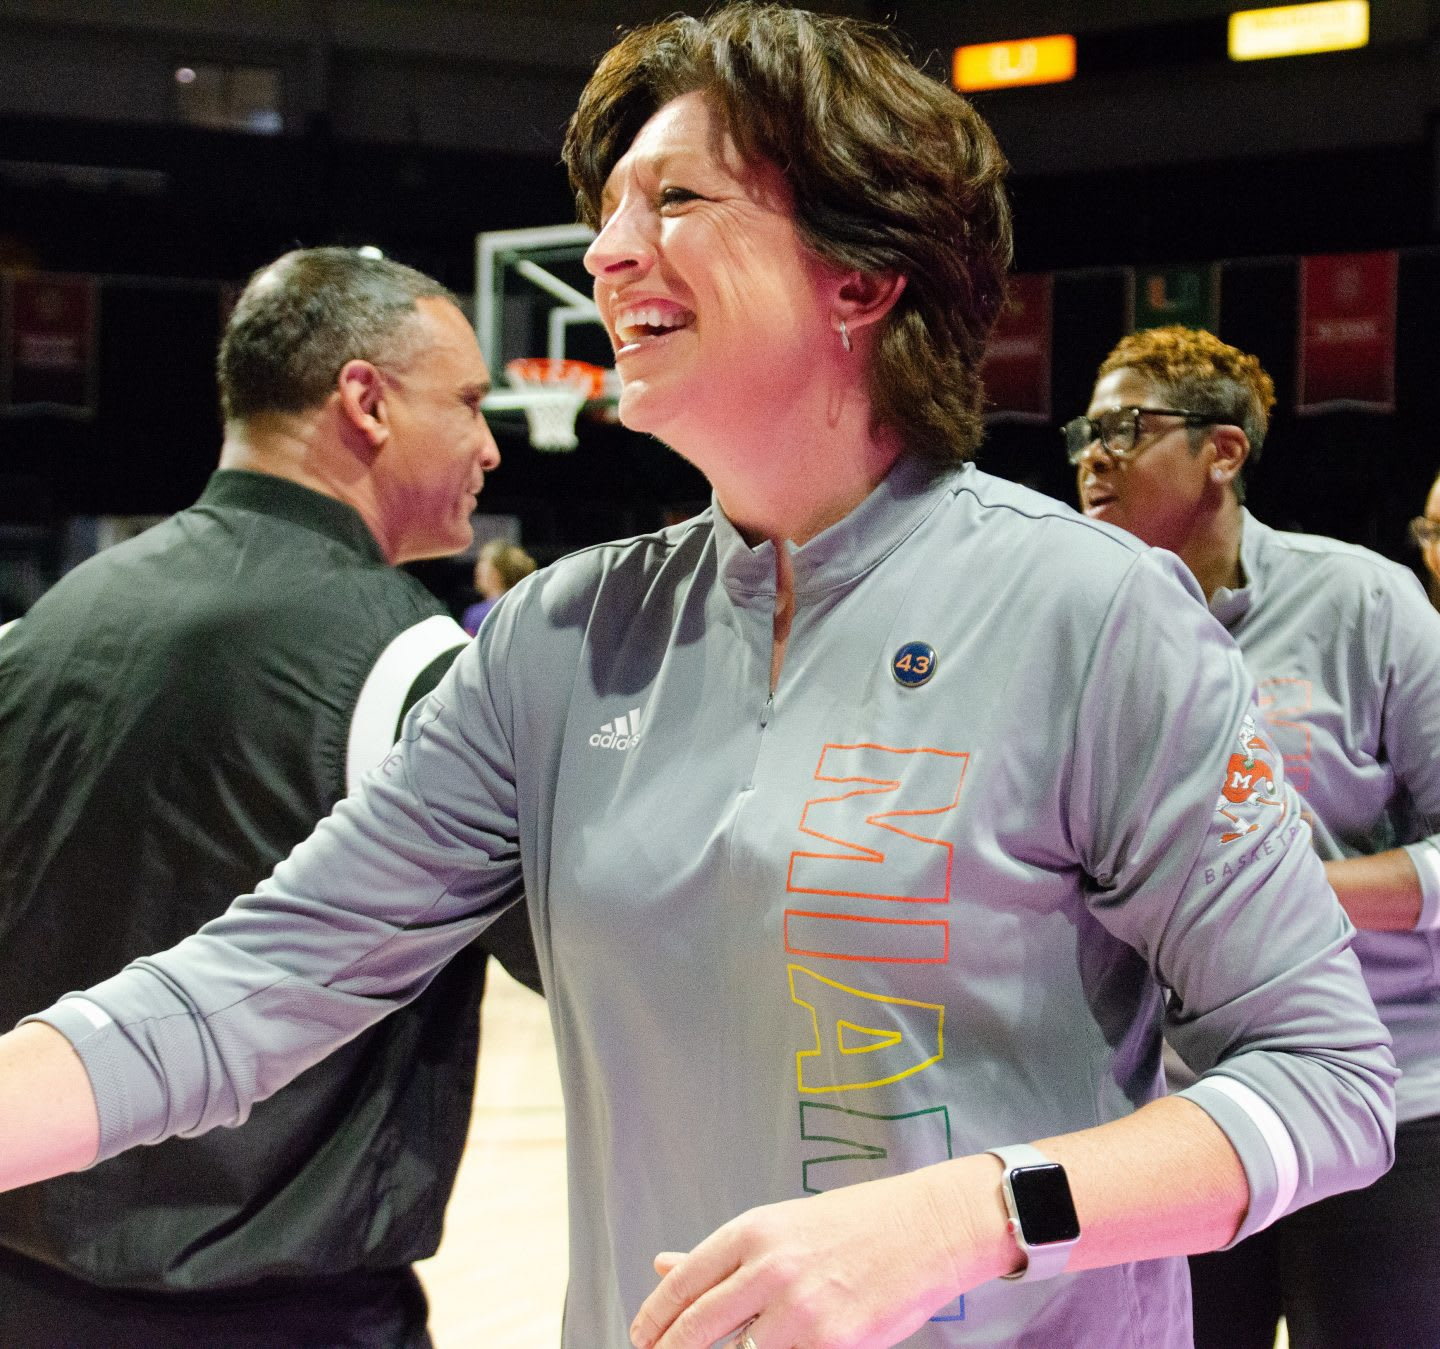 The coach of the University of Miami Womens Basketball Team smiling and wearing a grey shirt with pride colored letters. Pride, Sports, Athletes, Ally, Basketball, GamePlan A.